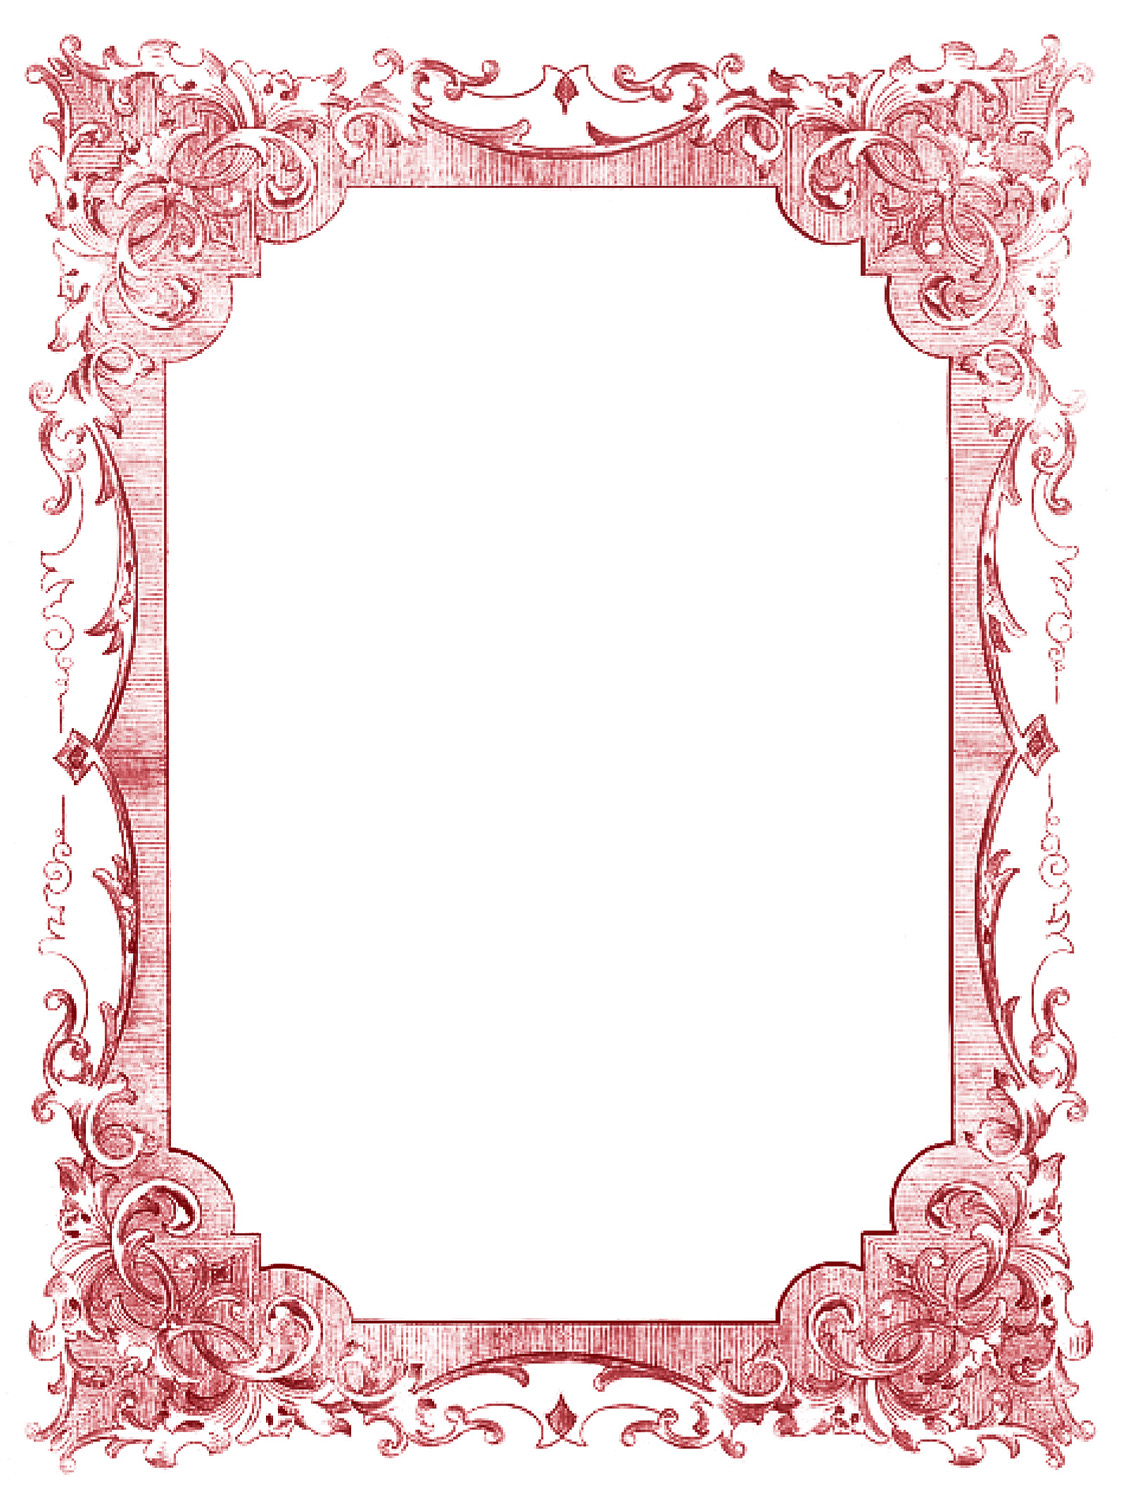 Frame Picture Free Park Frame Cliparts Download Free Clip Art Free Clip Art On